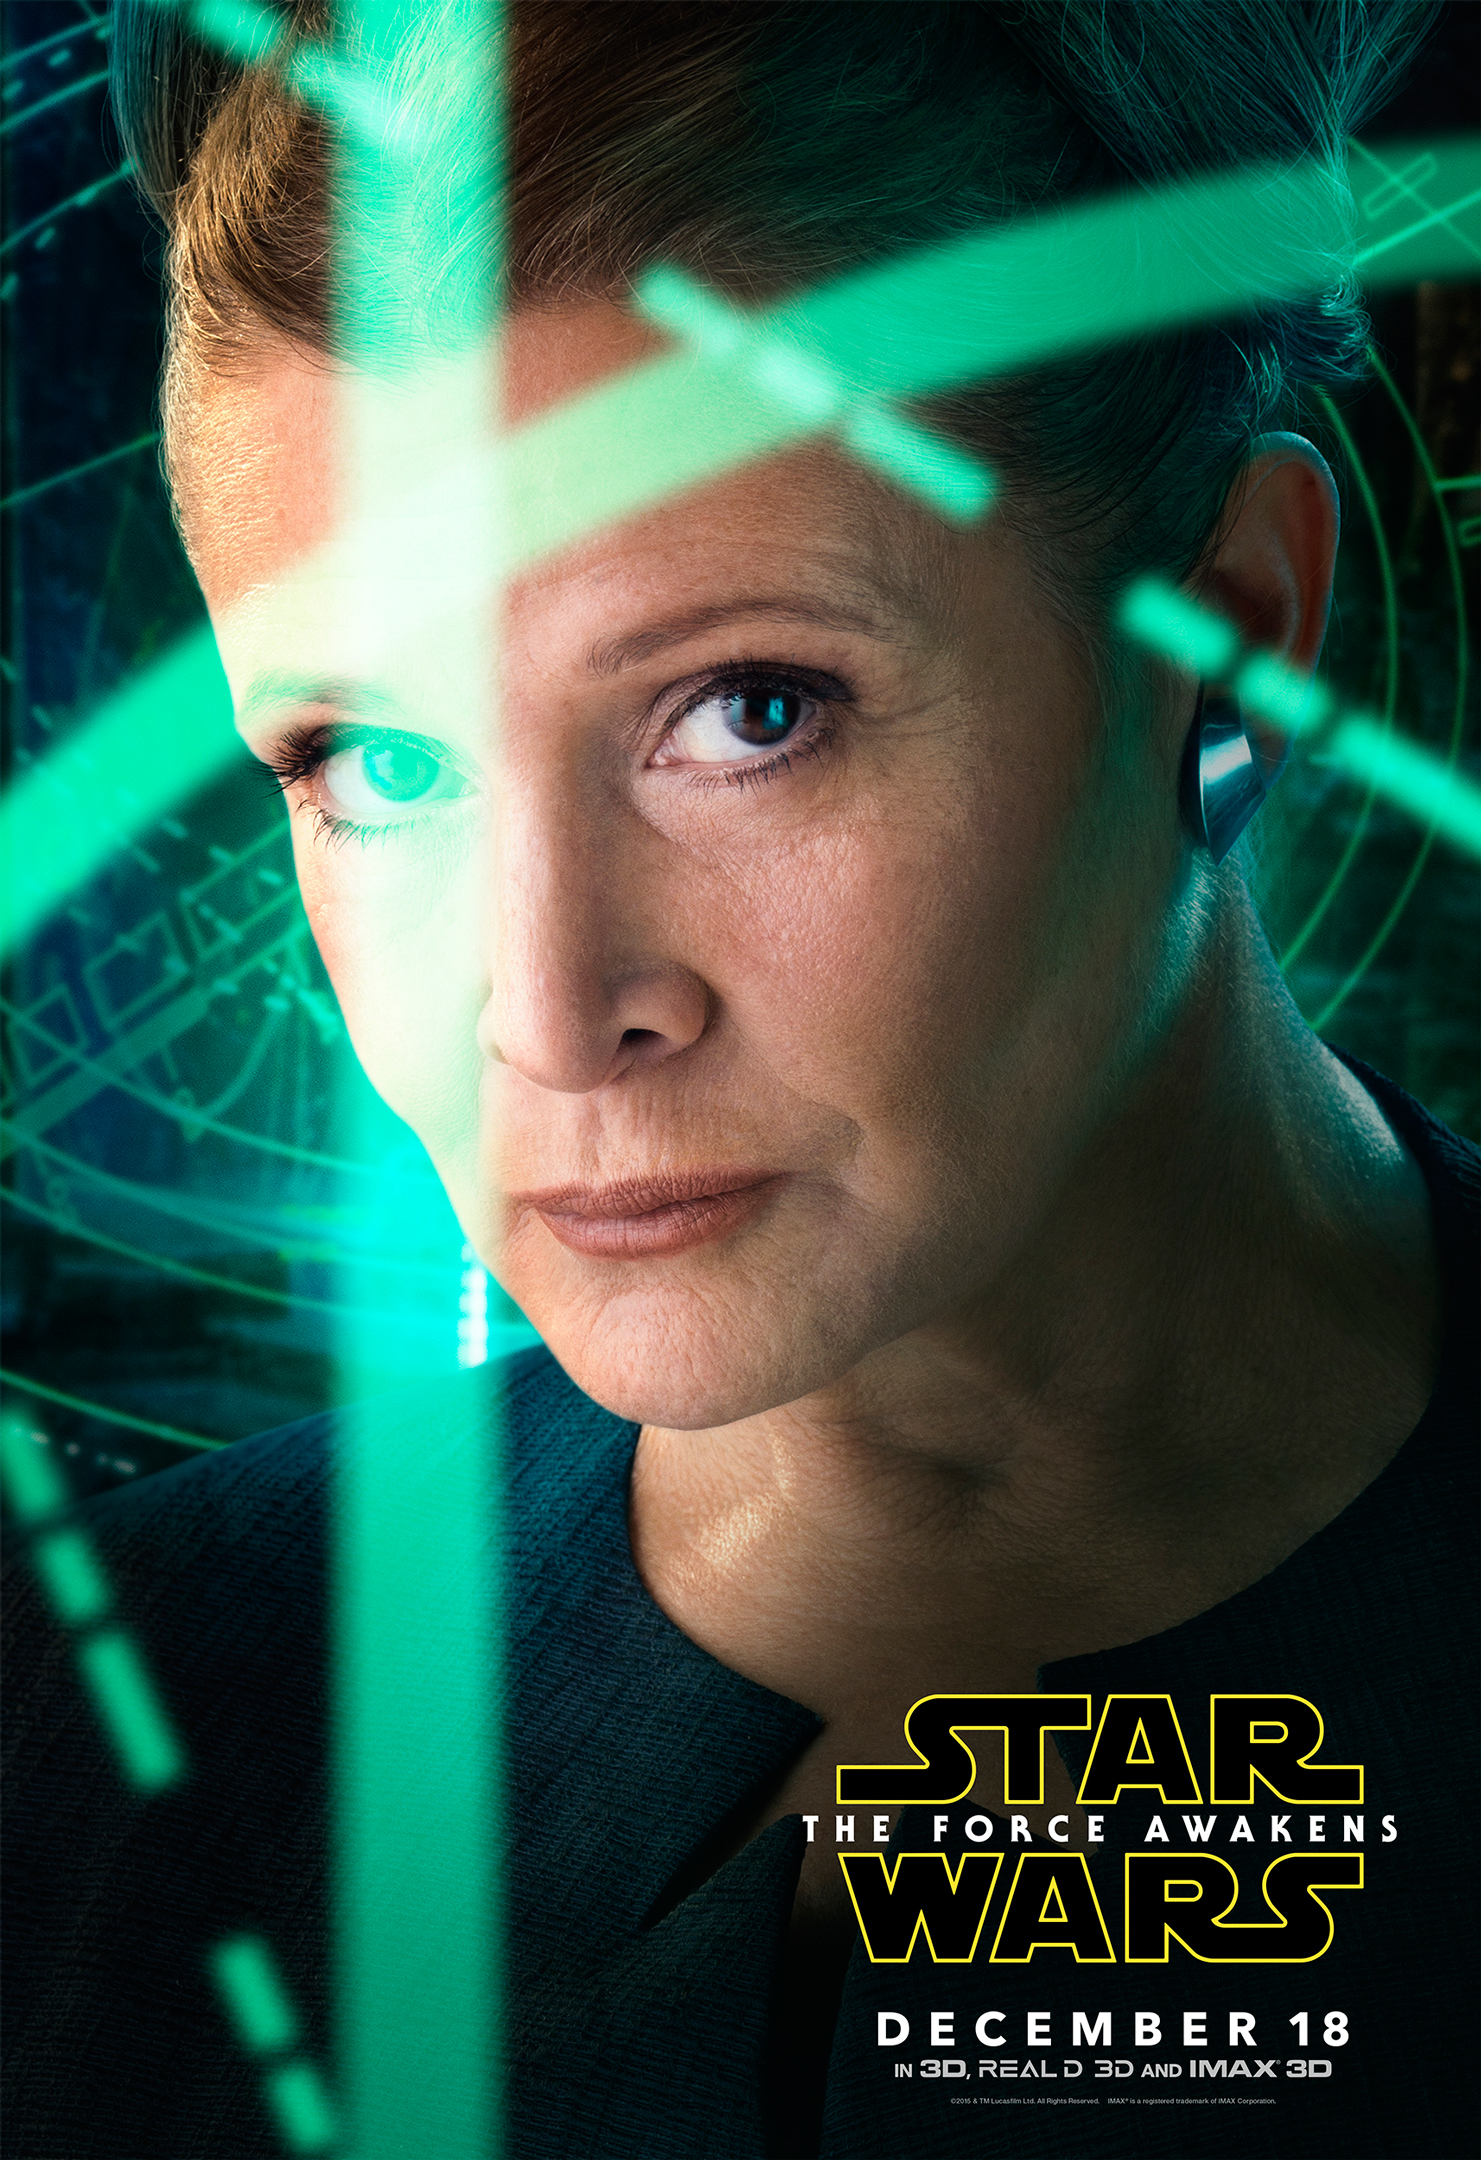 The Force Awakens Character Posters Revealed